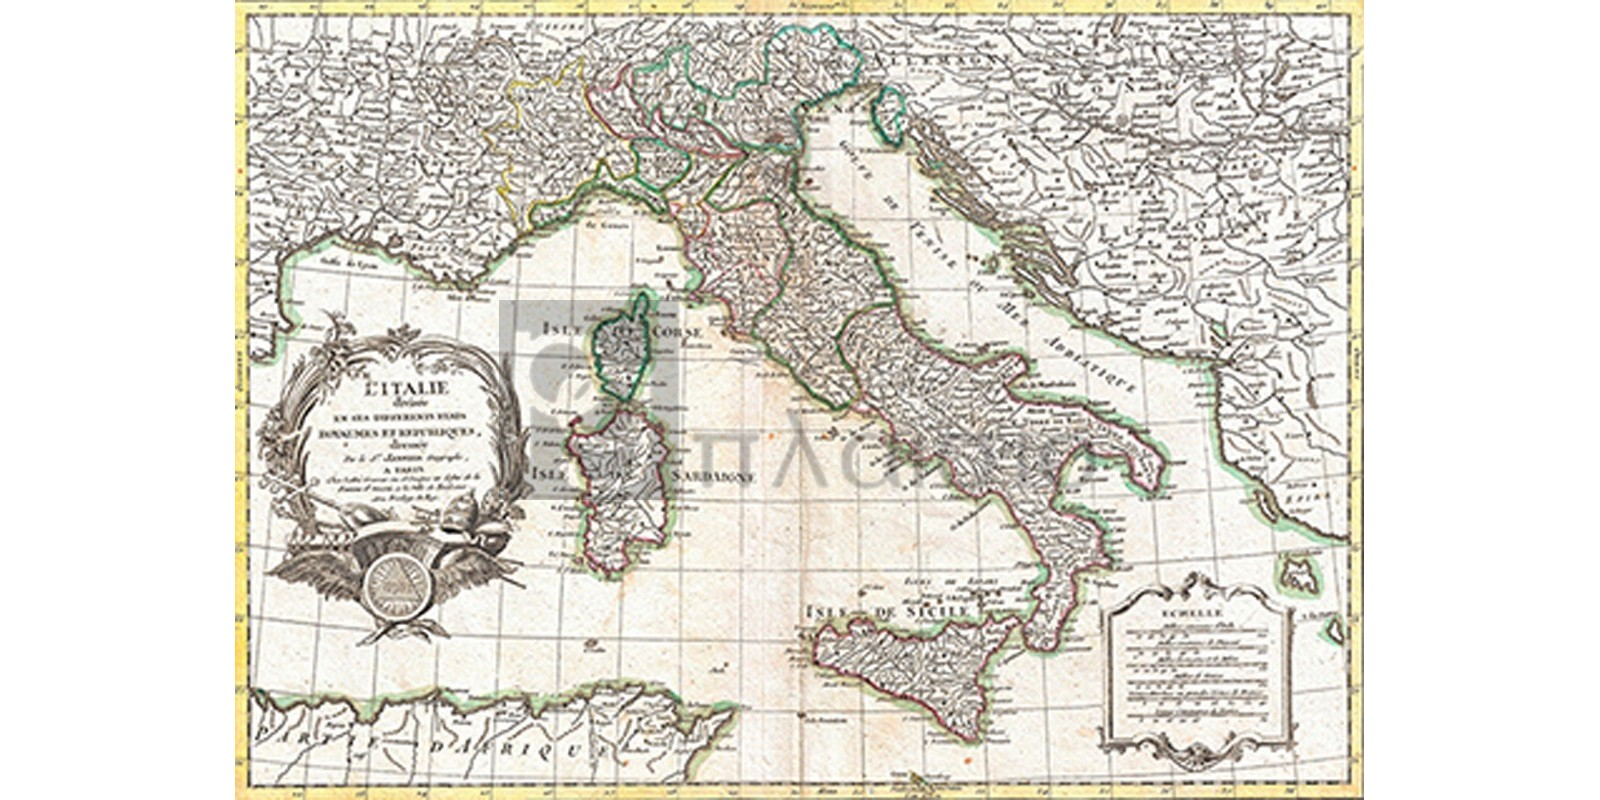 Robert Janvier - Map of Italy, 1770